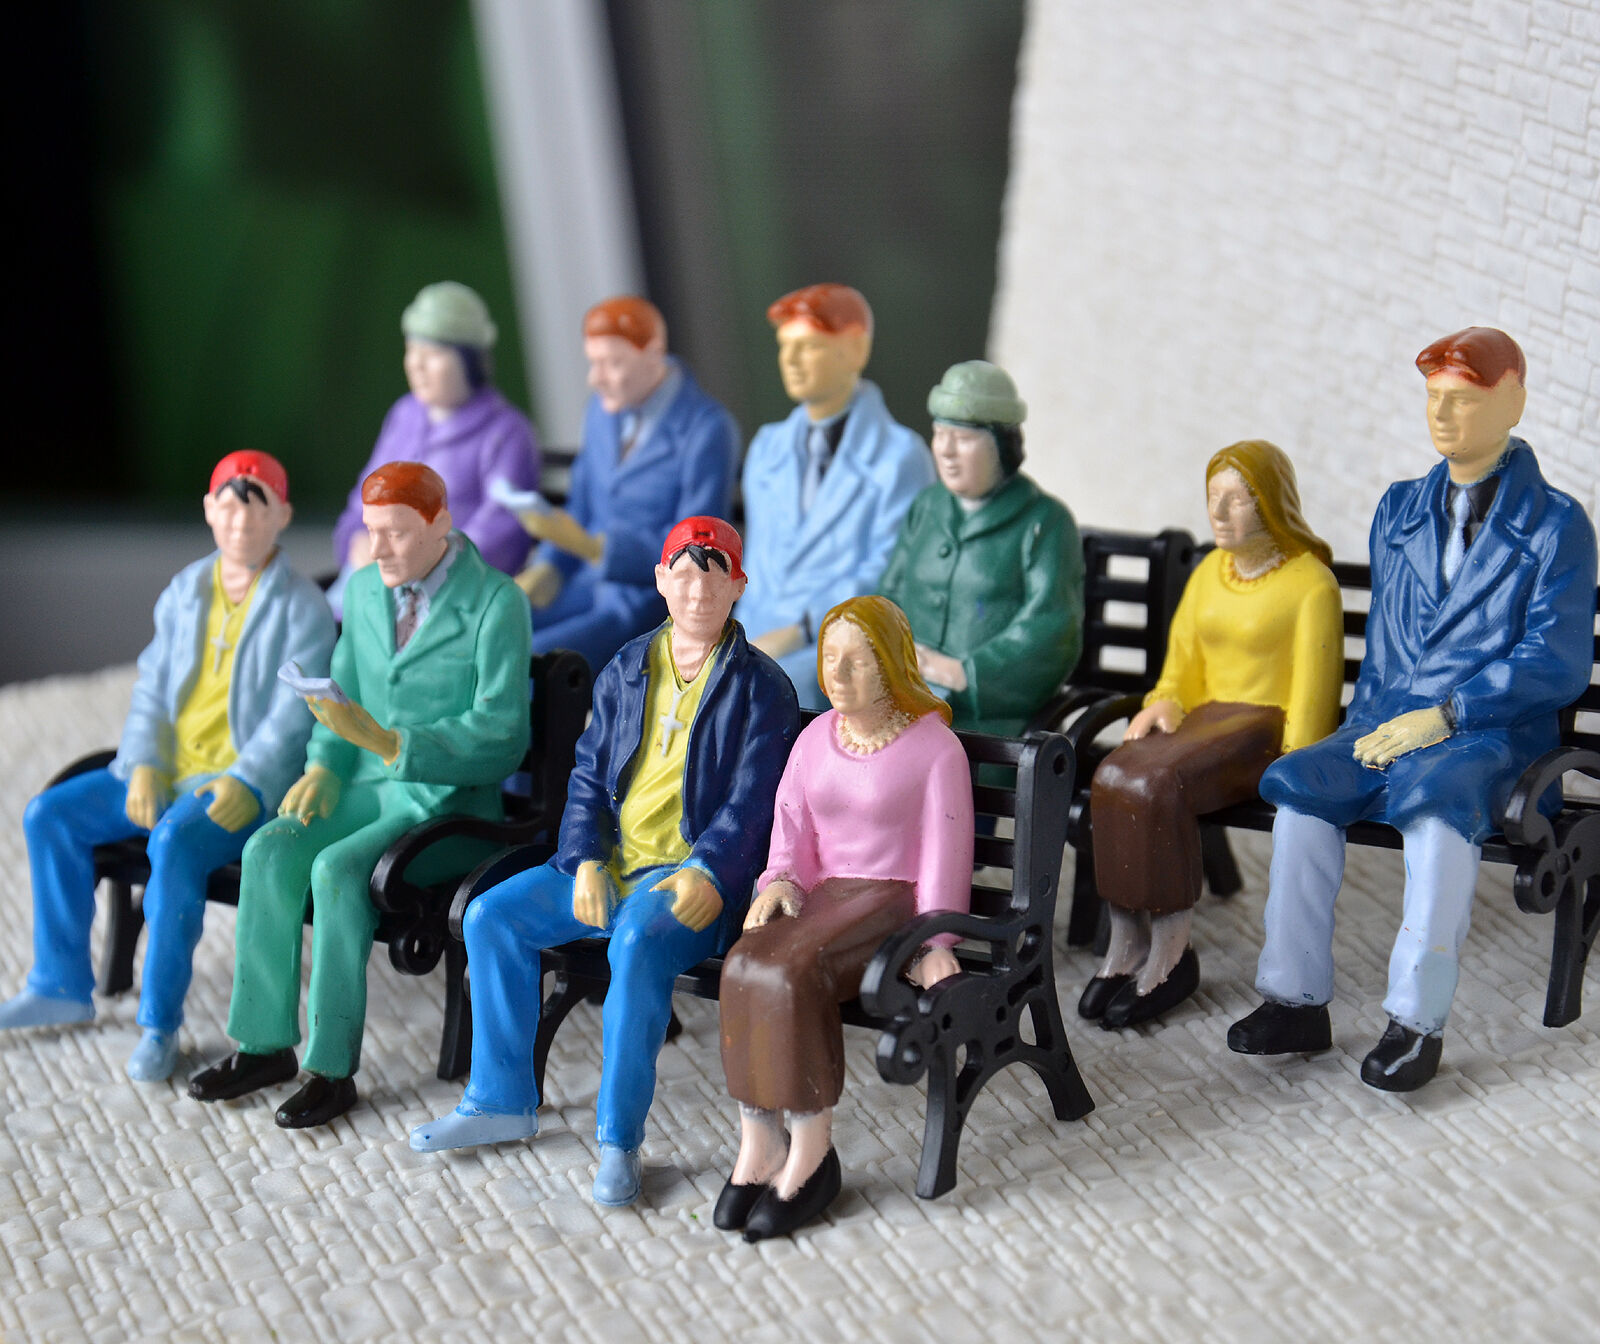 100 pcs G scale Figure 1 22.5 All Sitzed Painted People